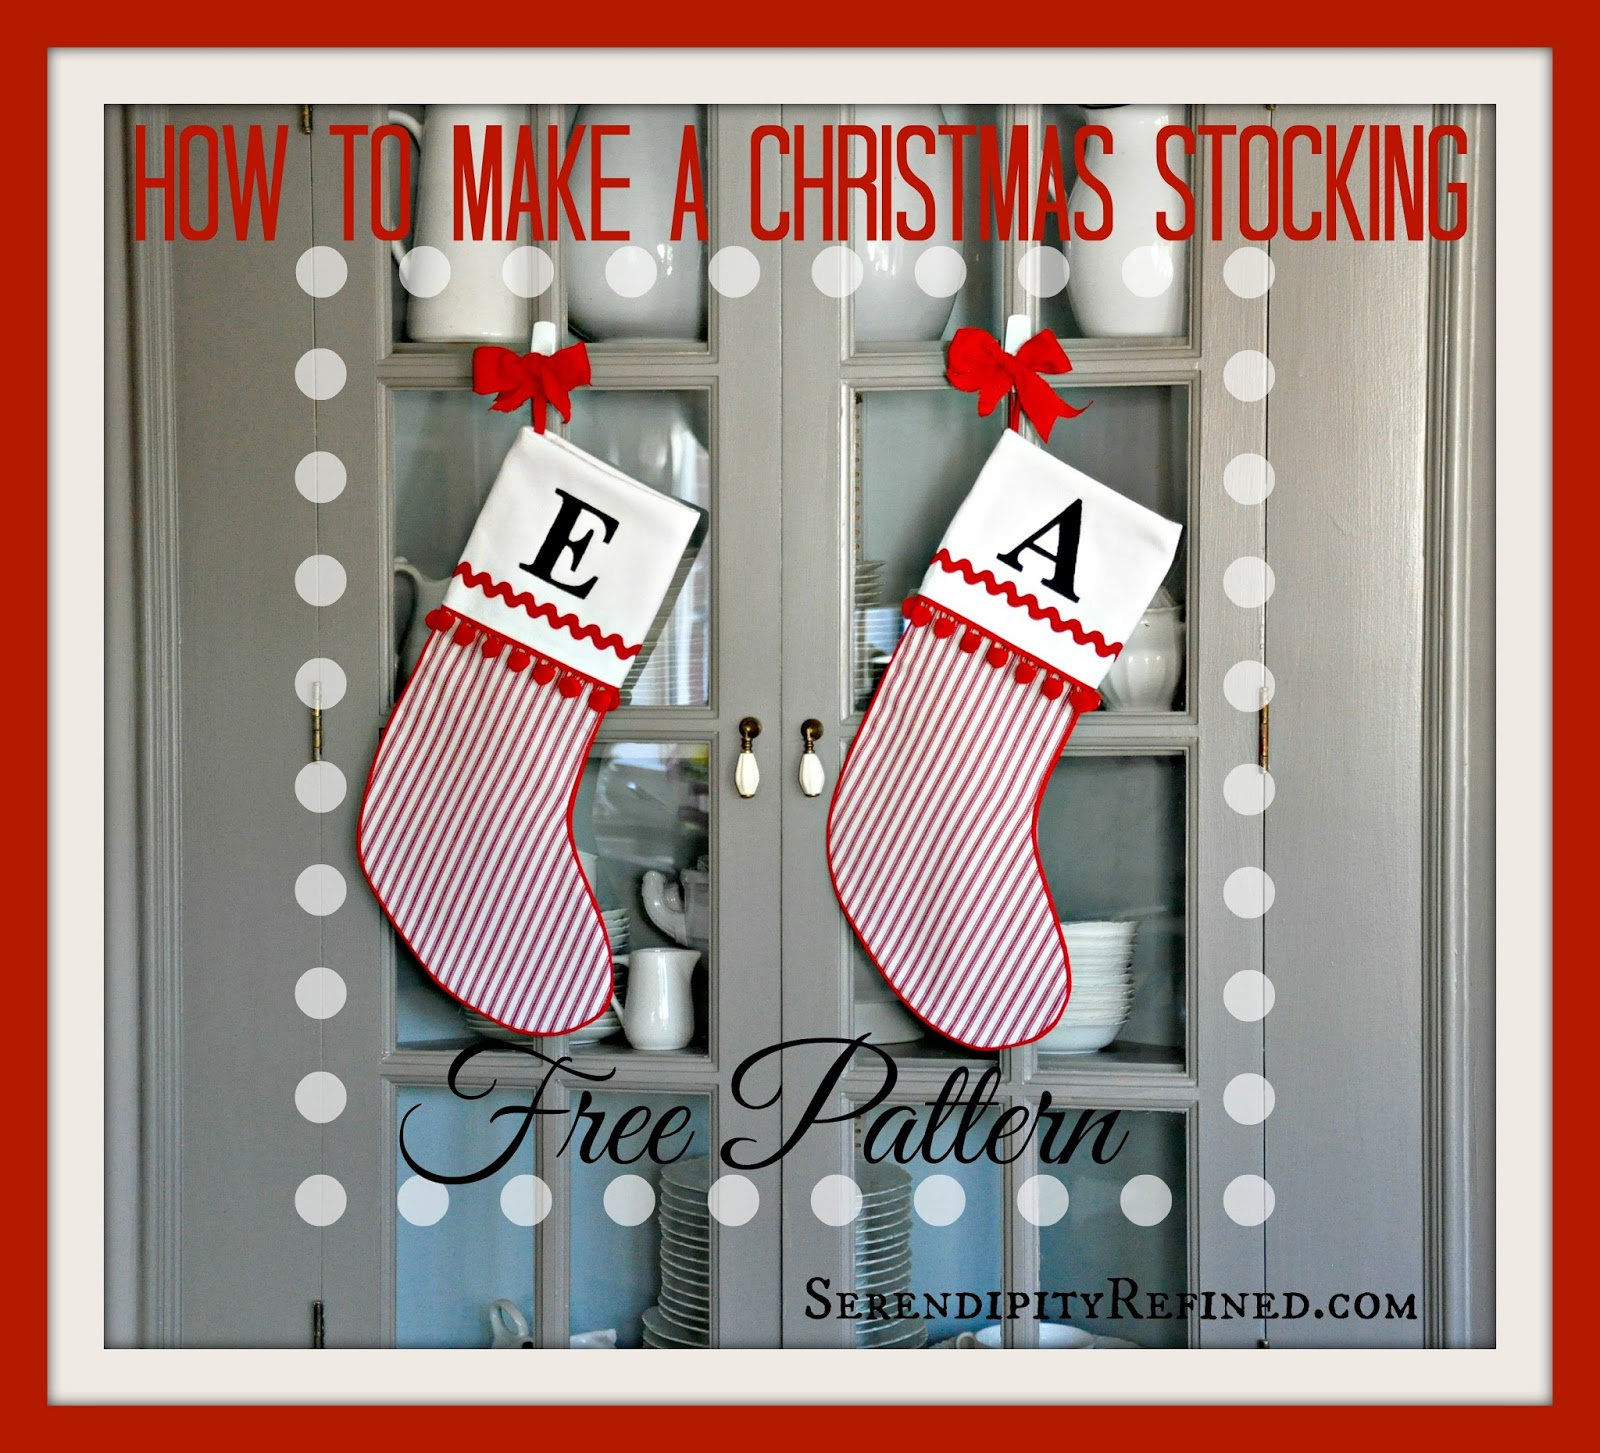 How to make achristmas stocking free pattern with cuff tutorial jpg